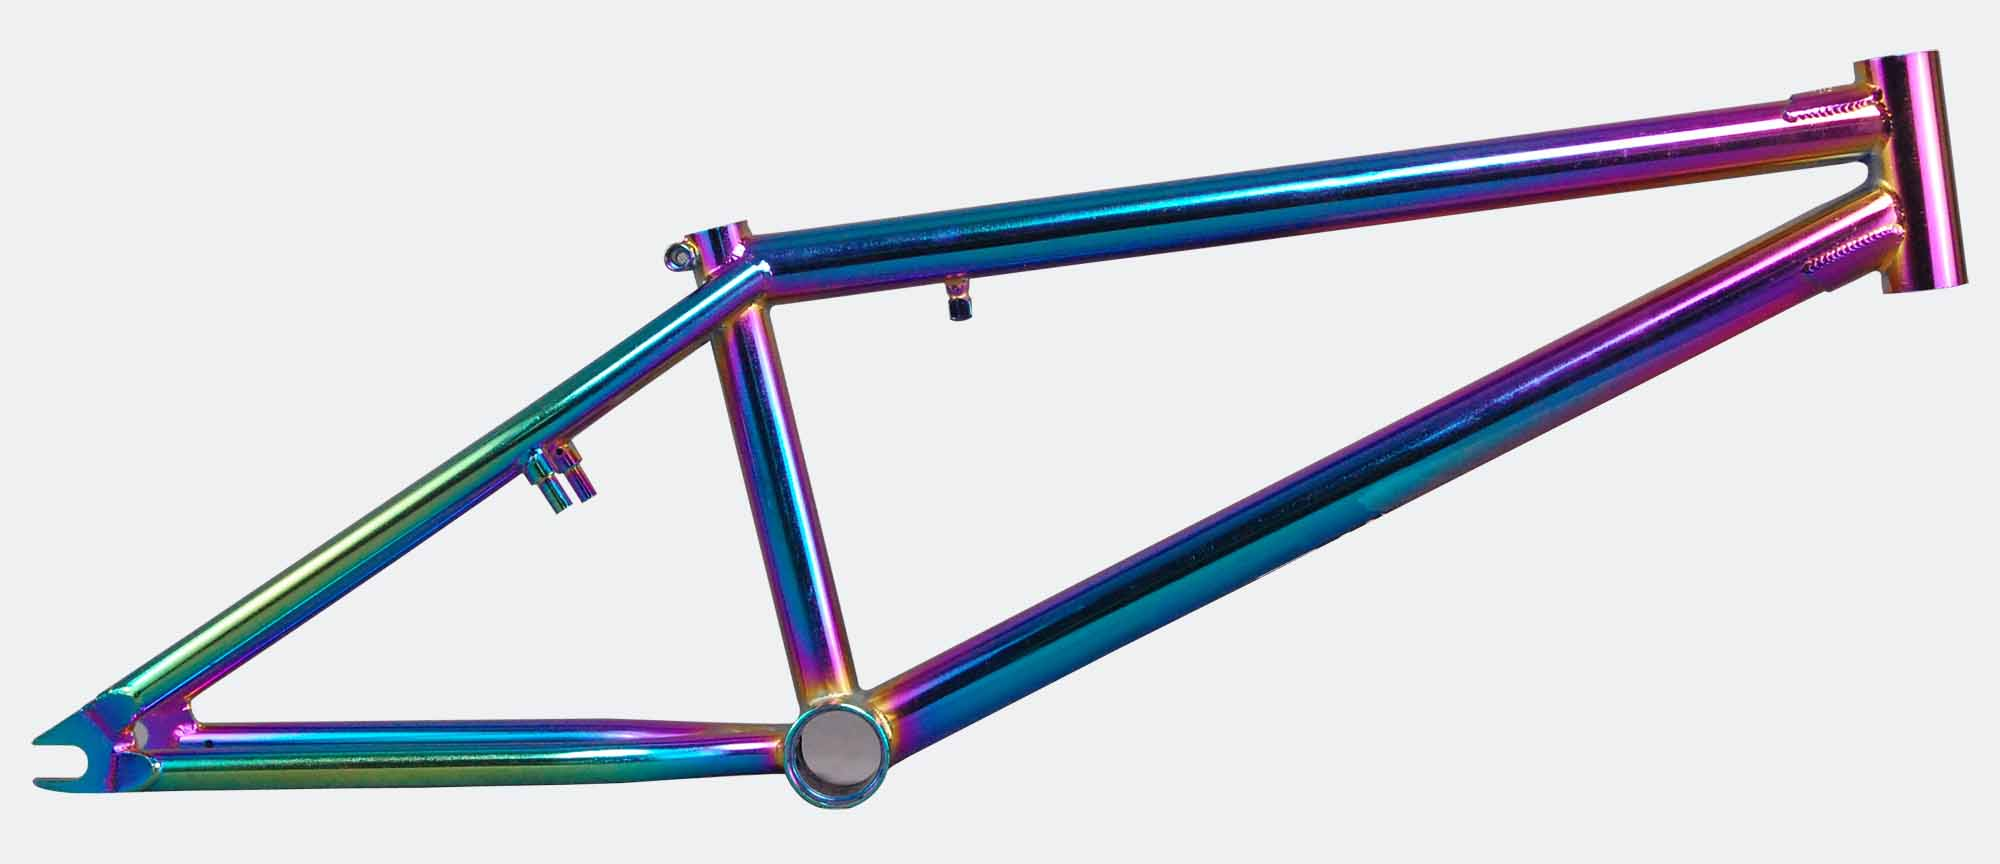 how to find fram color in bike